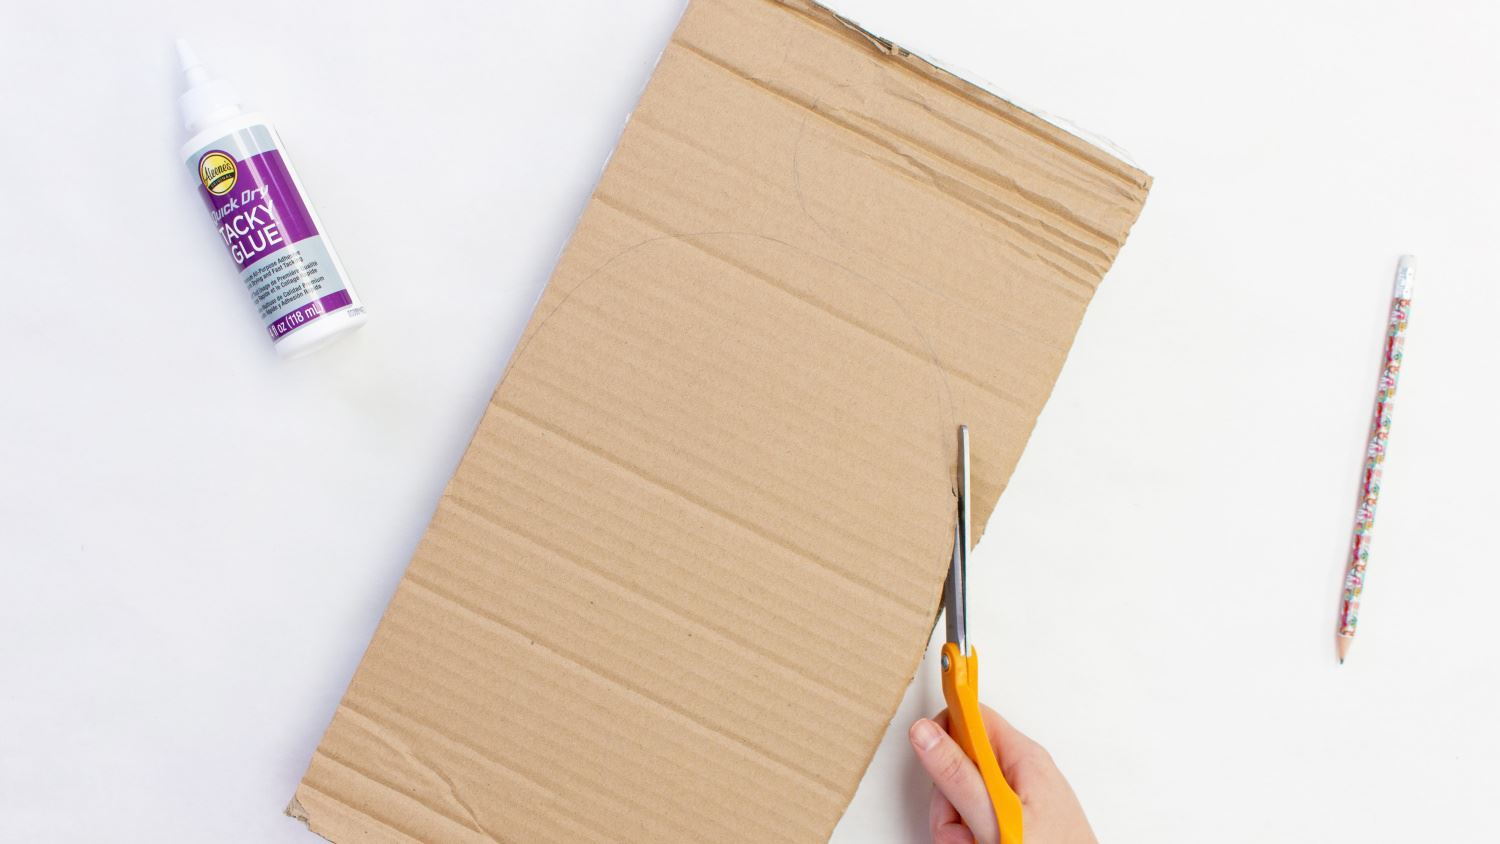 Draw and cut out a U shape from cardboard